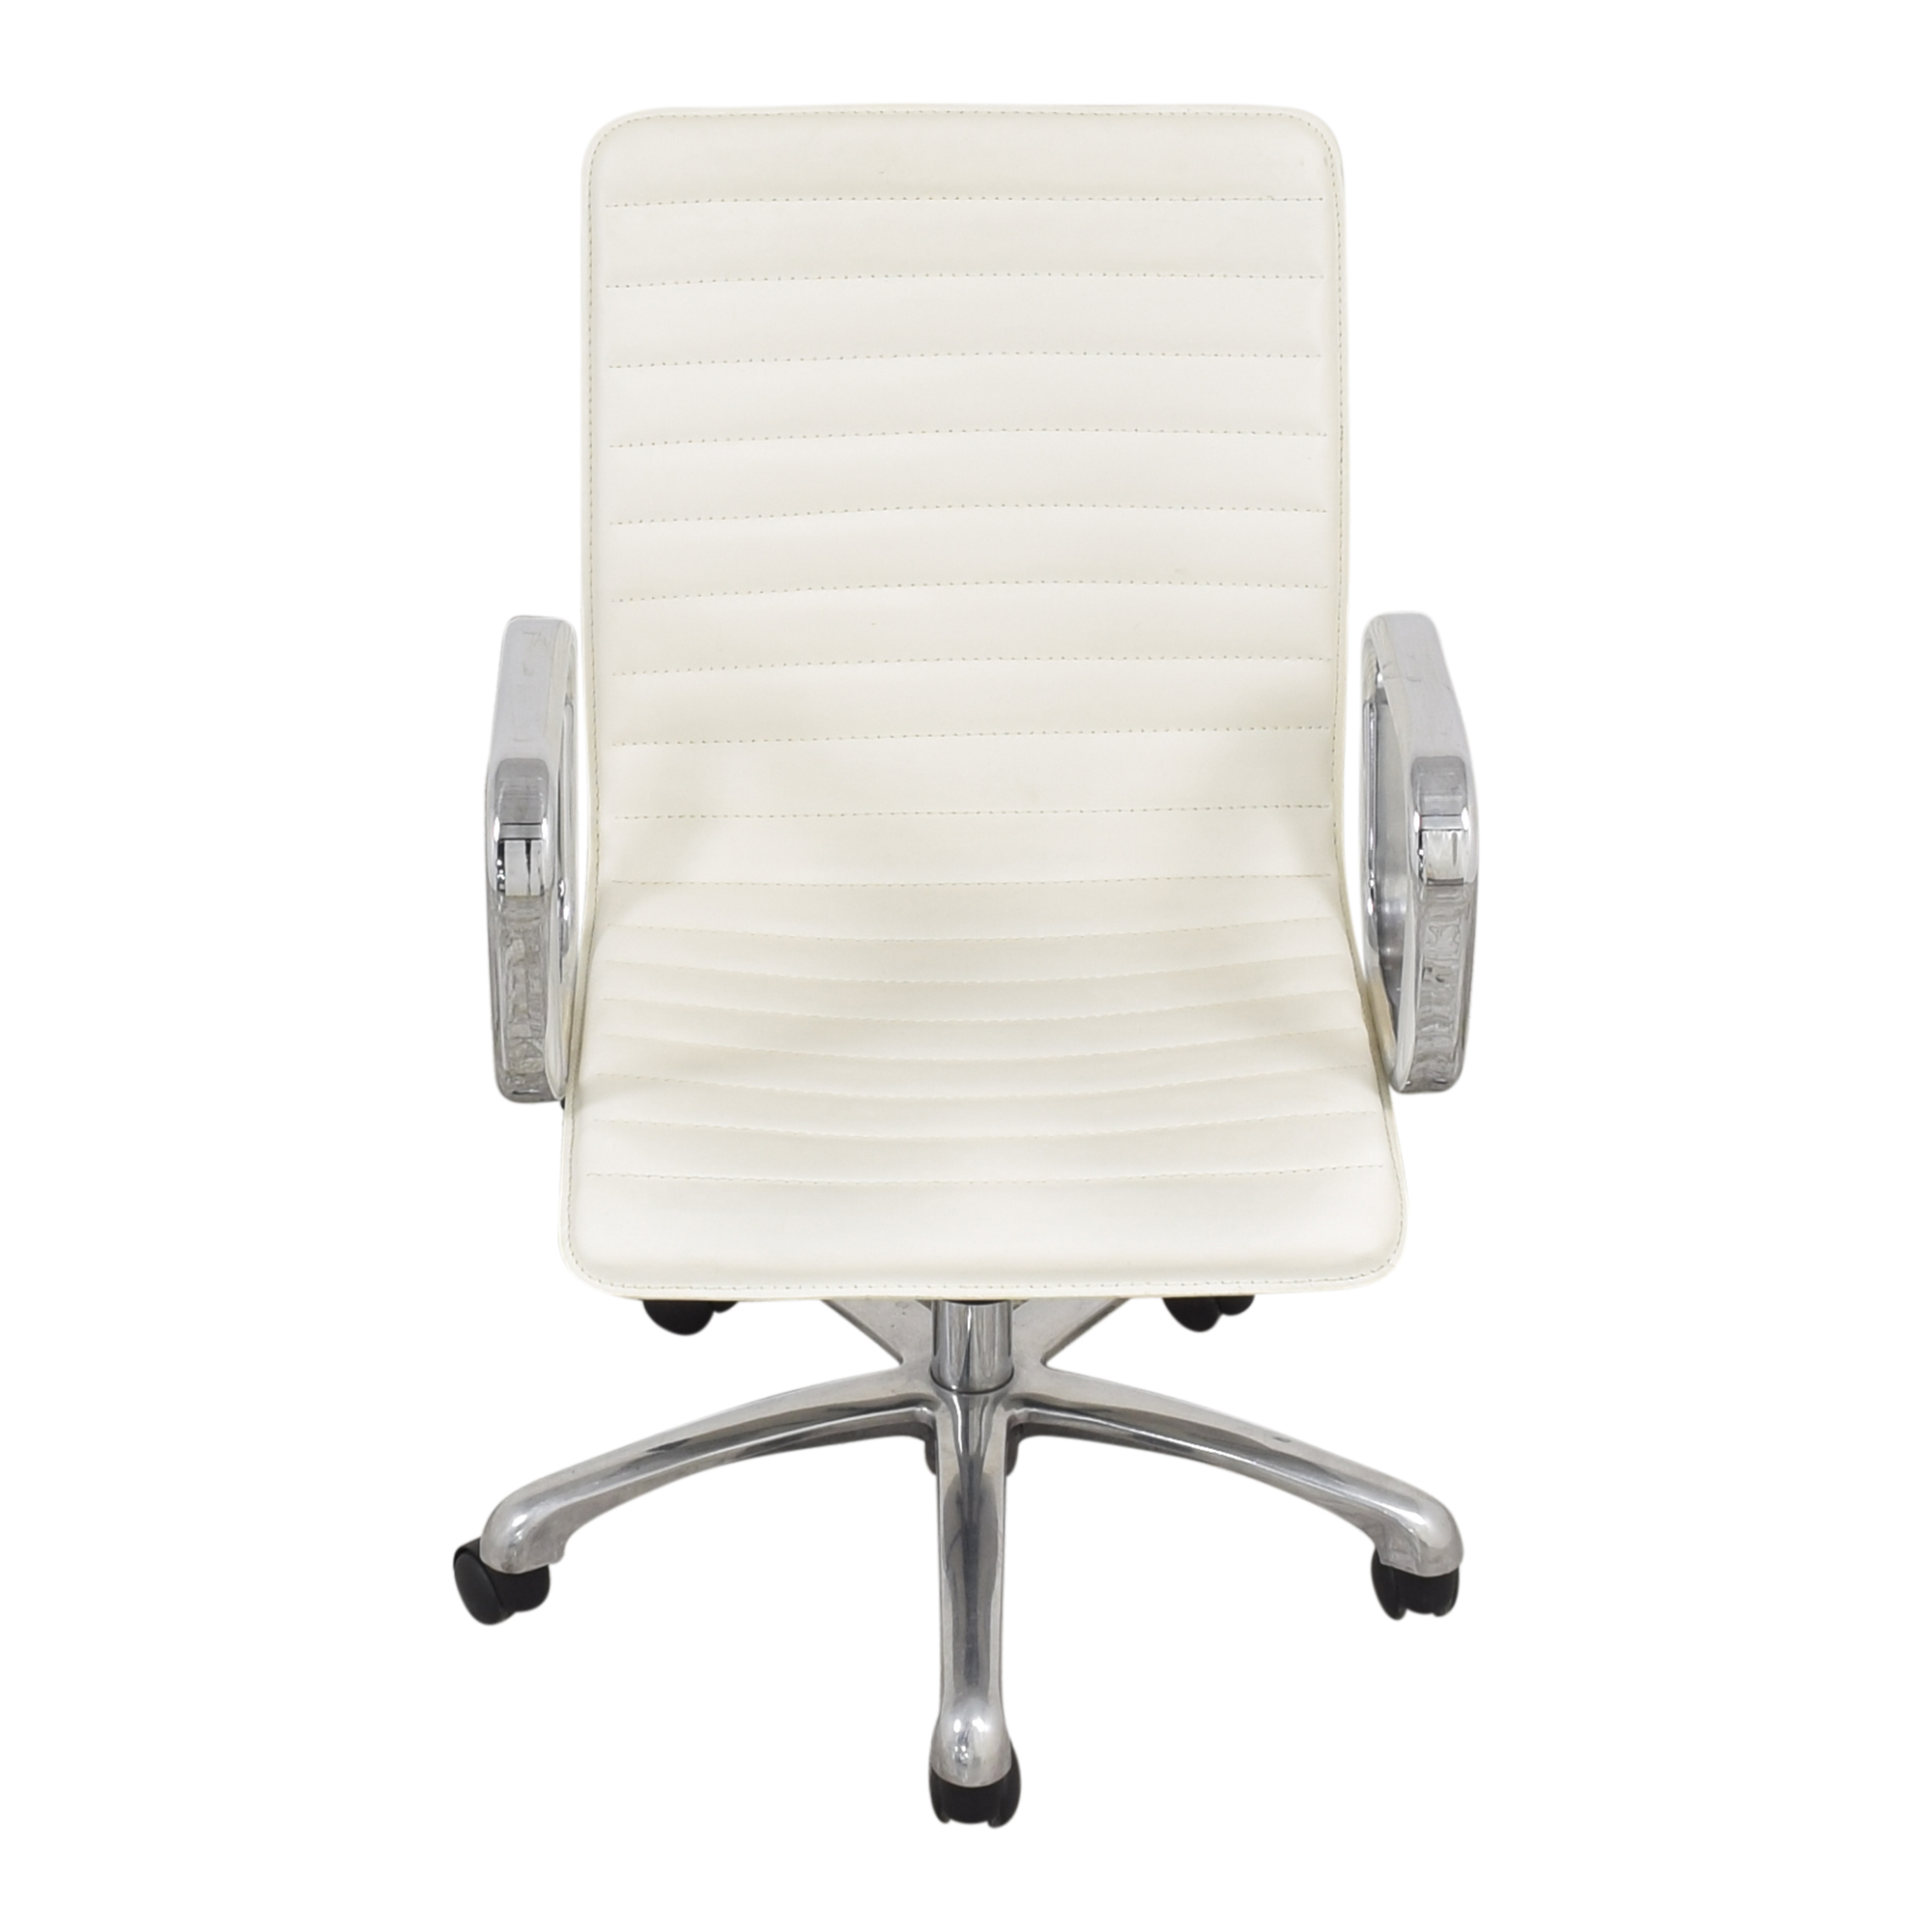 Crate & Barrel Crate & Barrel Ripple Ivory Office Chair with Chrome Base nyc